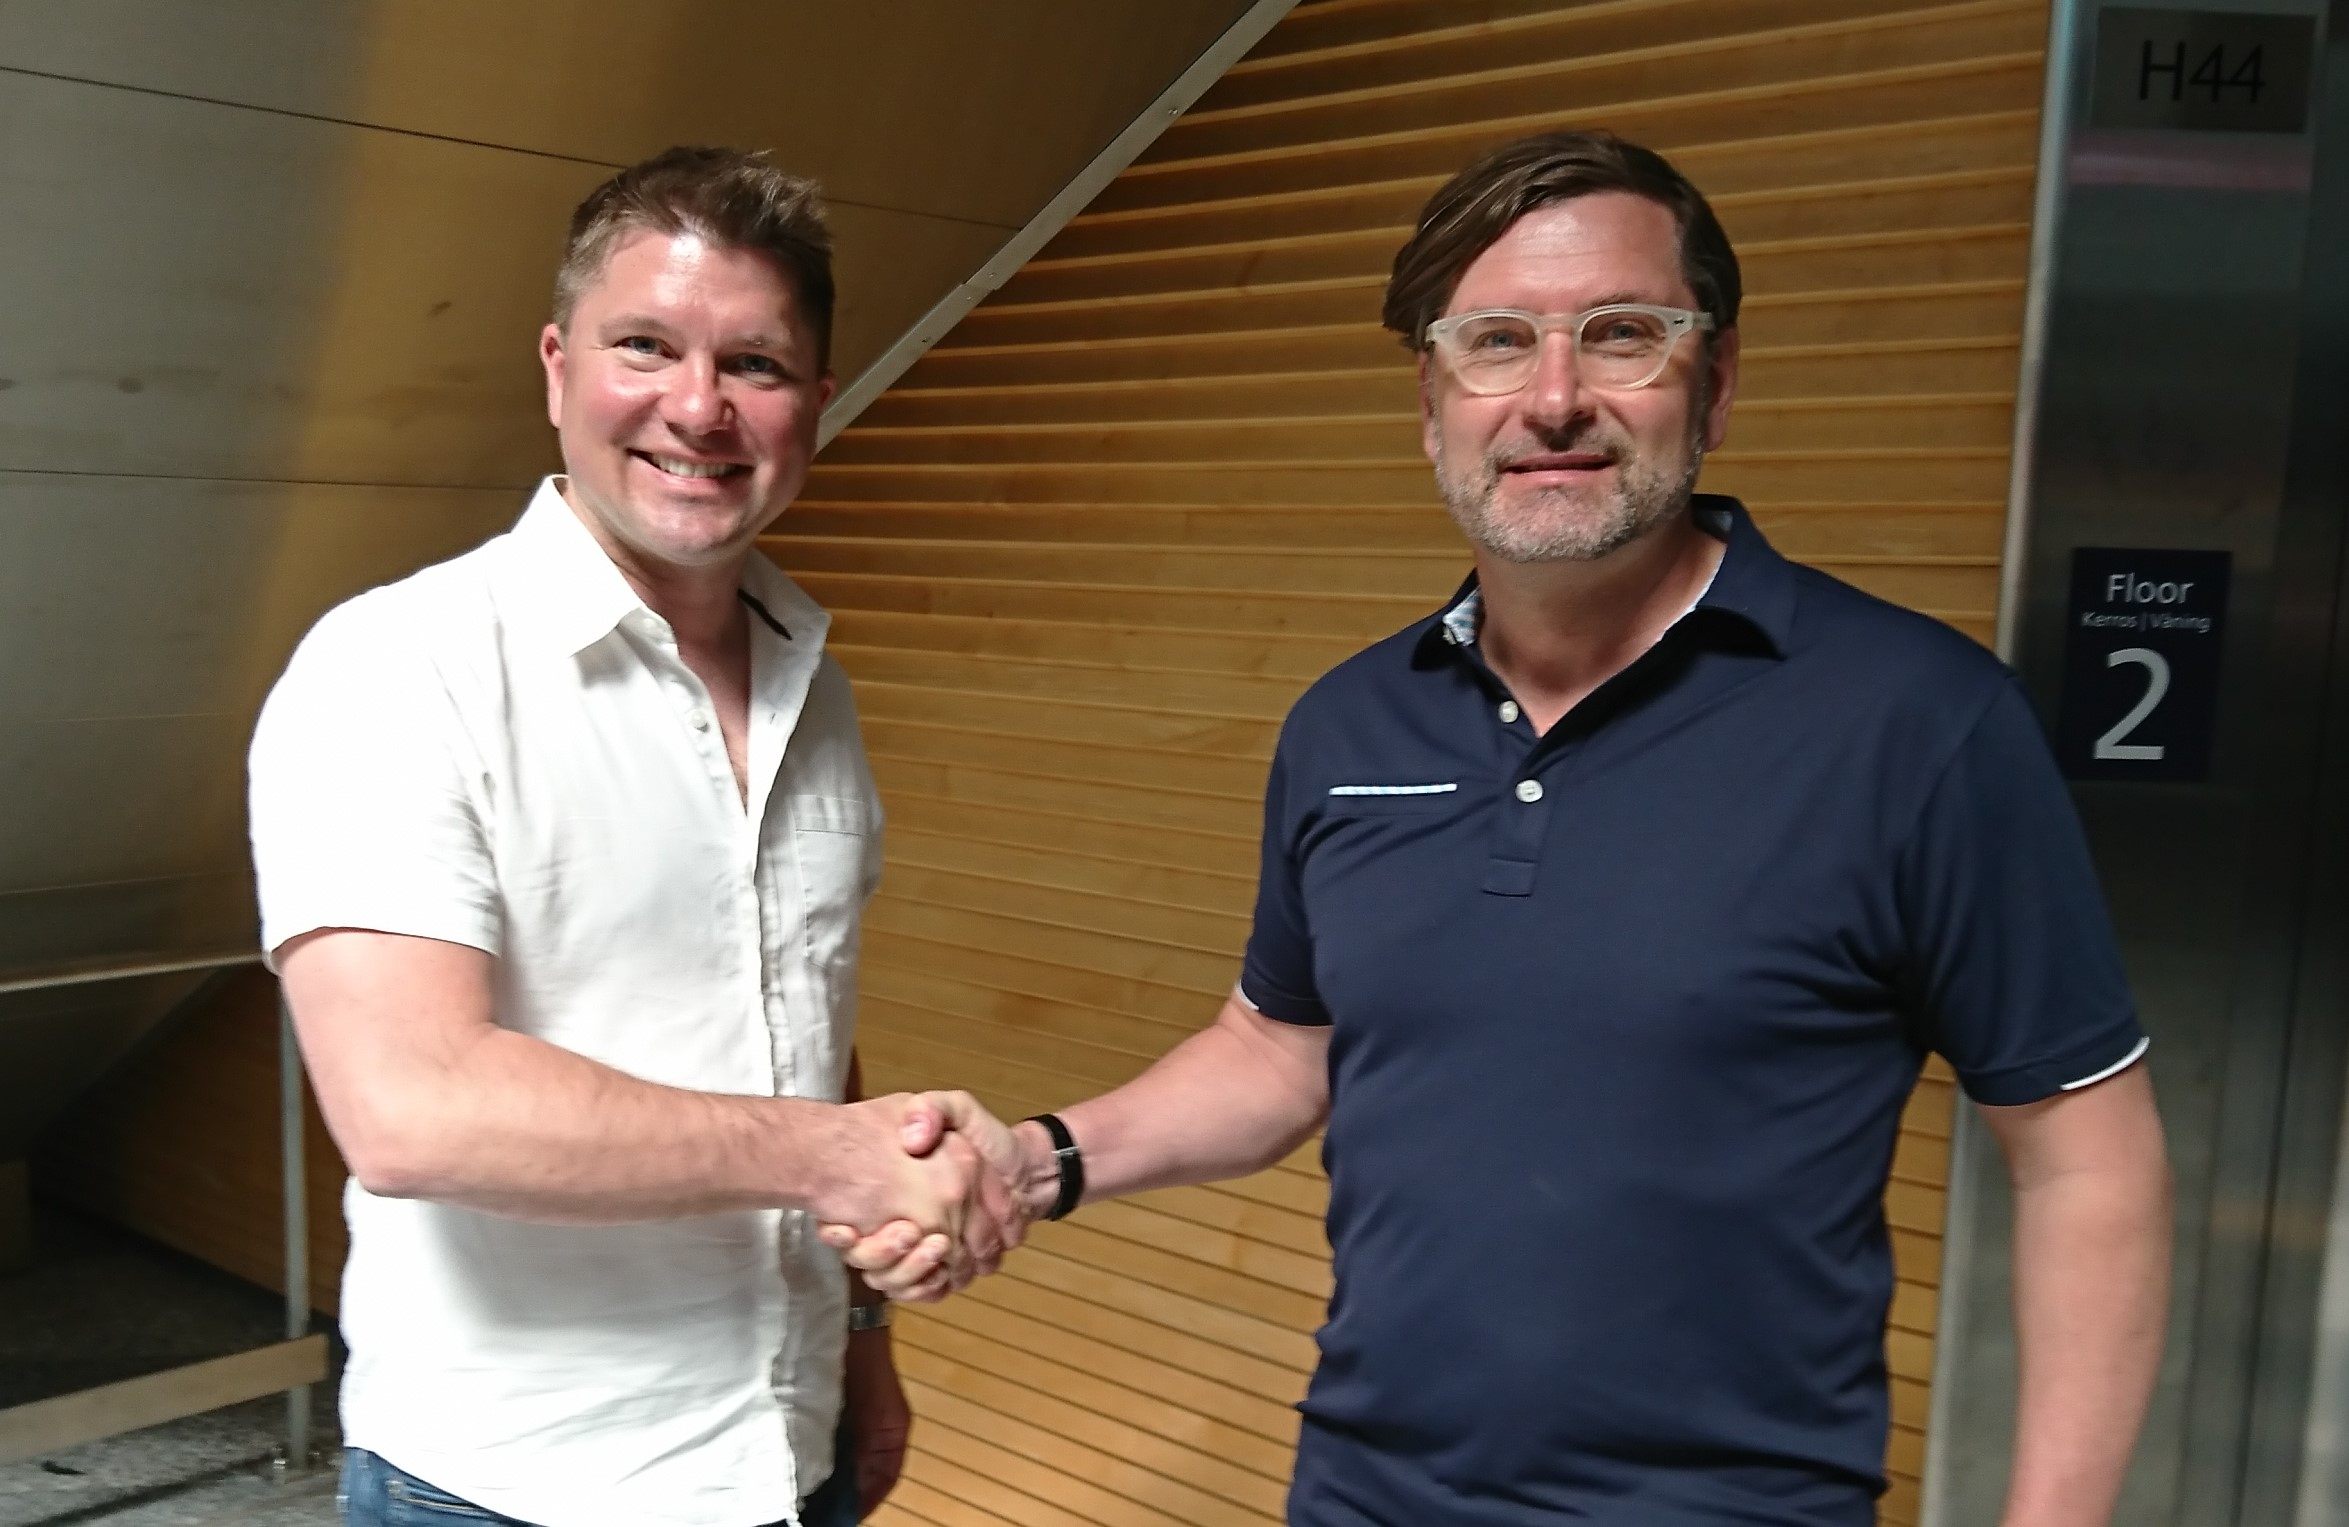 CEO-Maximilian_LeRoux_shakes_hands_with_new_Director_EMEA+Asia_Hannu_Elopuro2